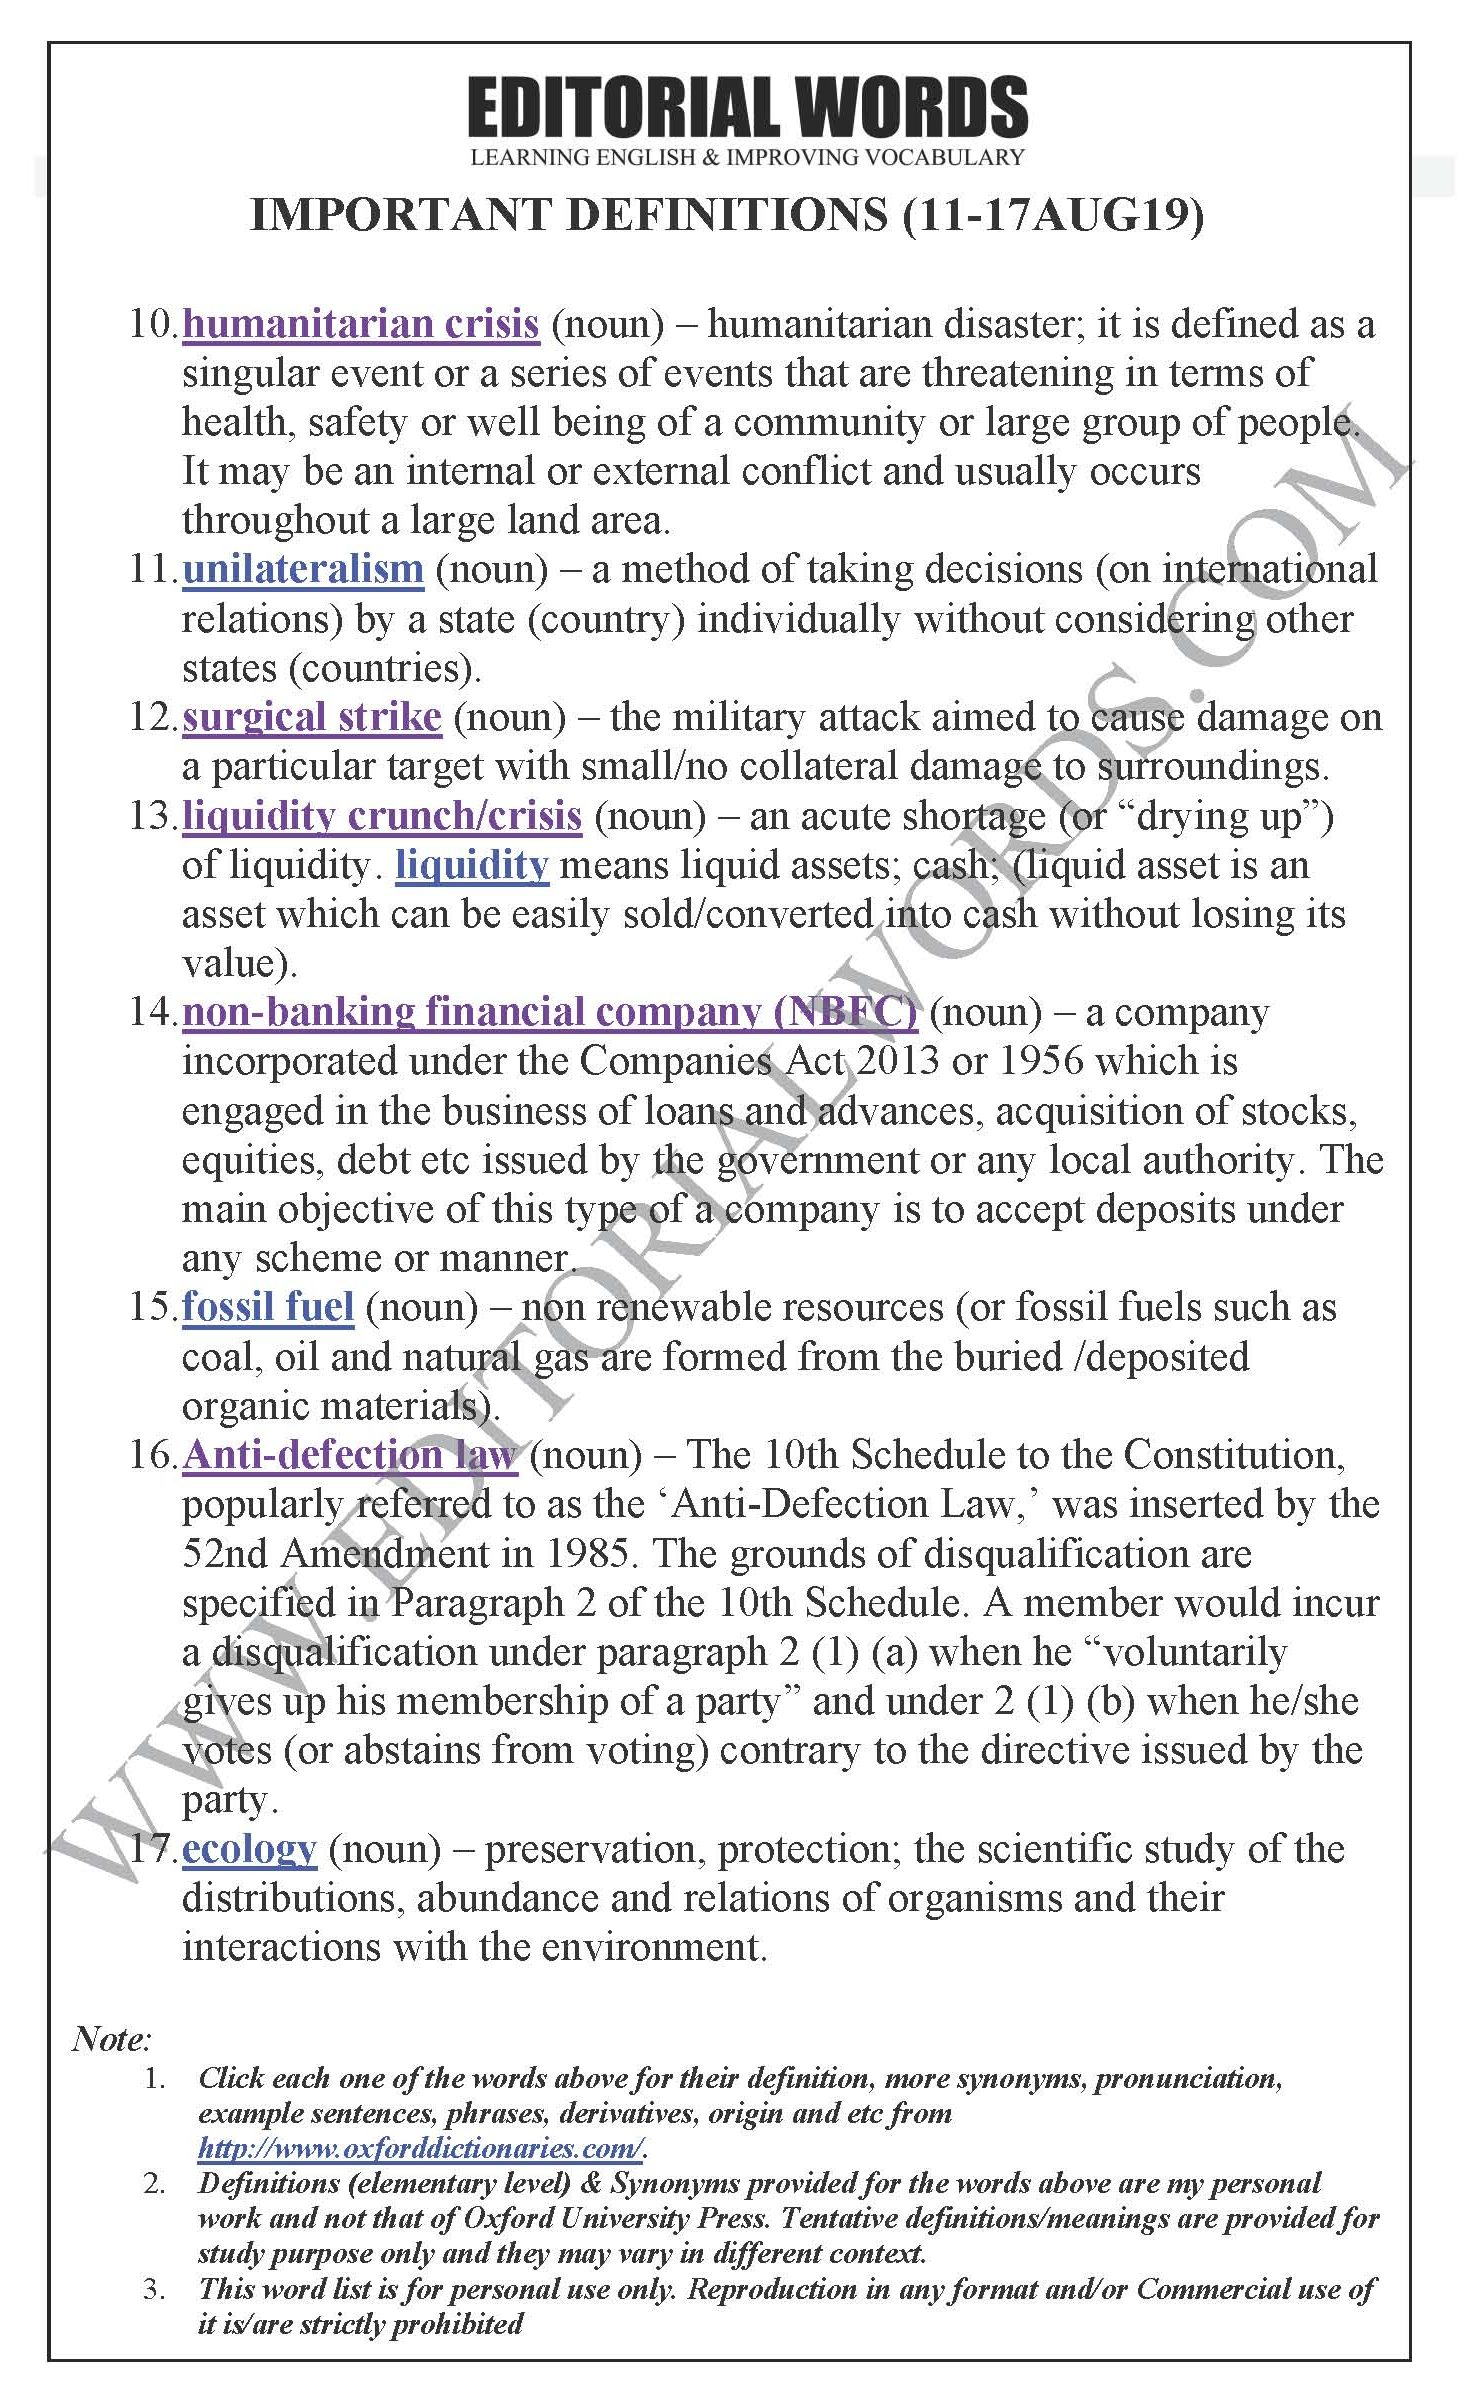 """""""Important Definitions"""" We Learnt Last Week (Aug 11-17, 2019)"""